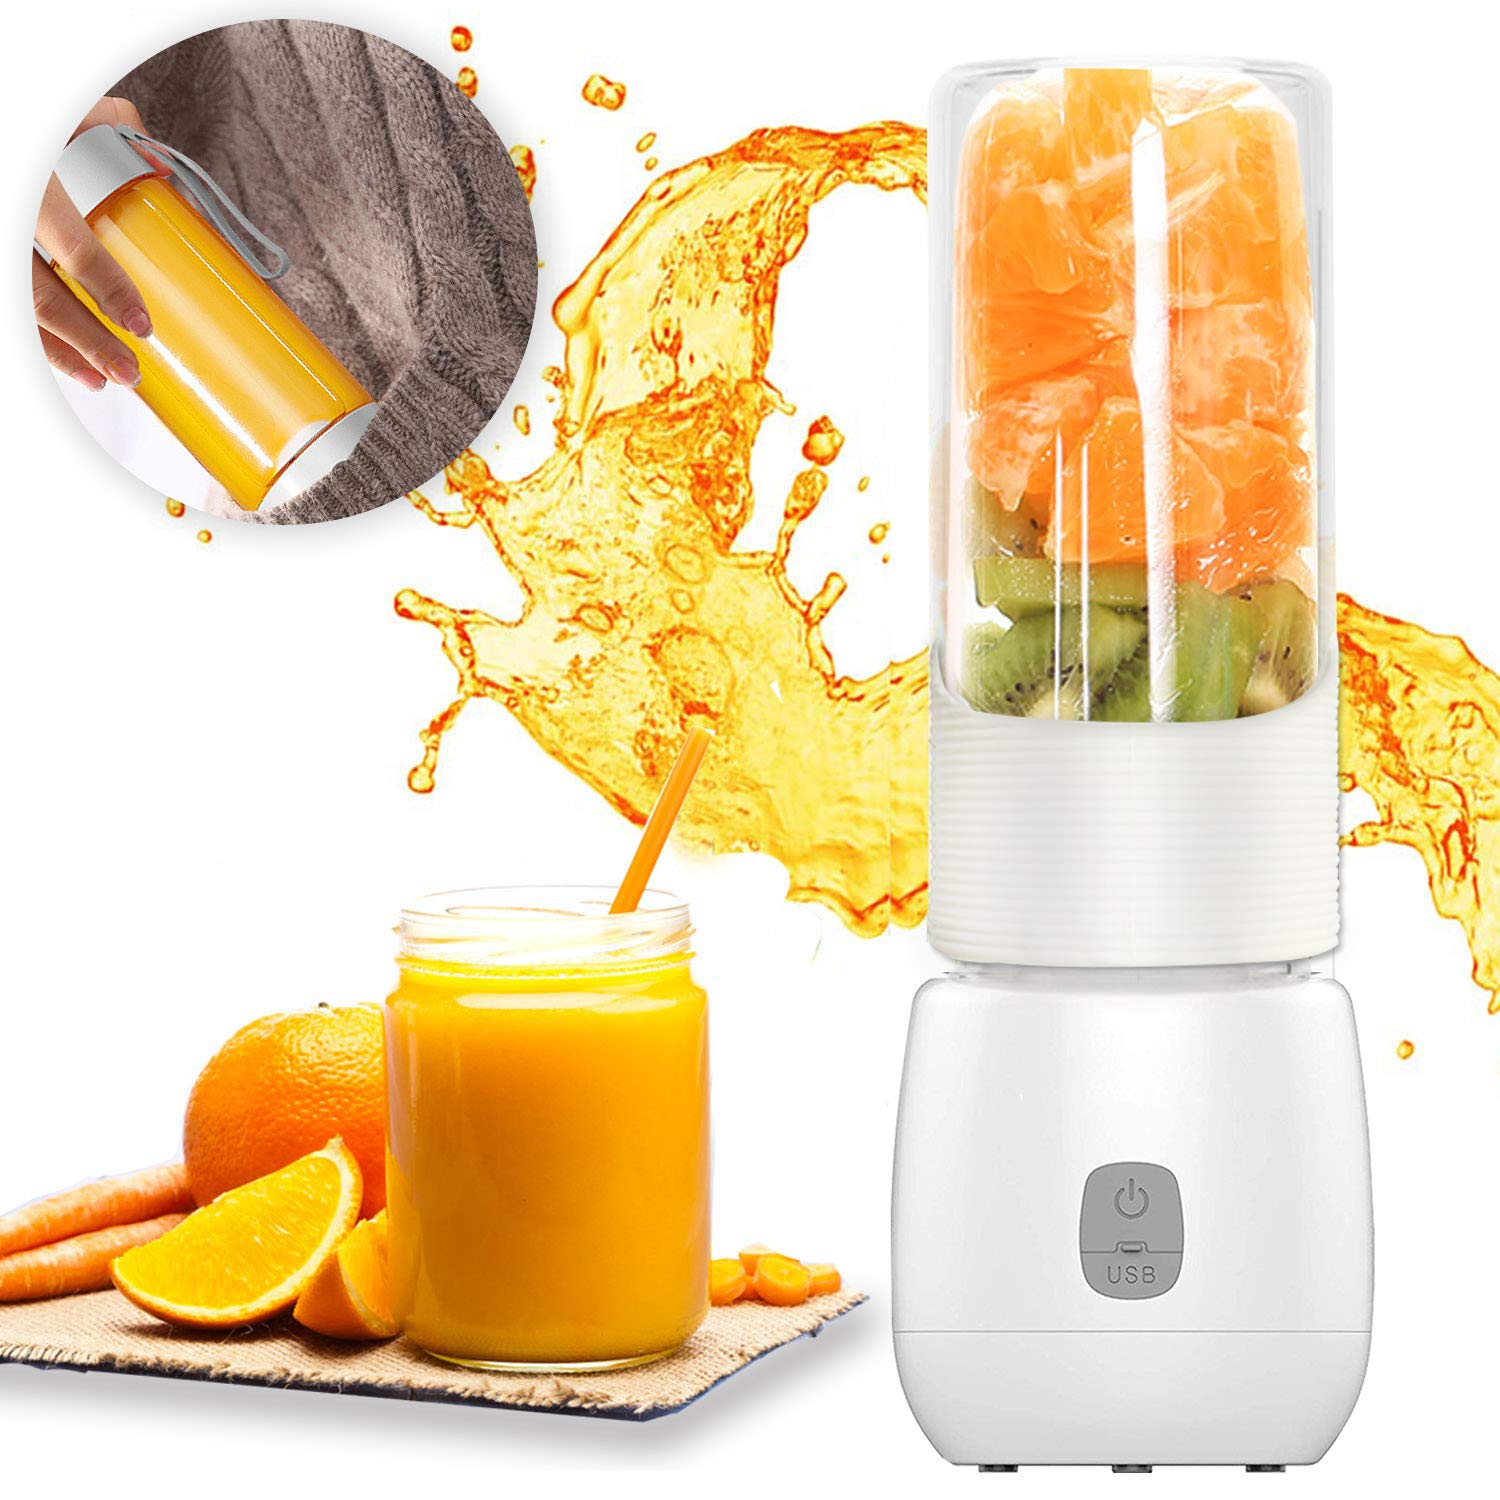 Dee Banna Mini Portable Usb Rechargeable Juicer Blender With 6 Blades 460ml White Personal Blender For Travelingspotshomeoffice And Outdoorperfect